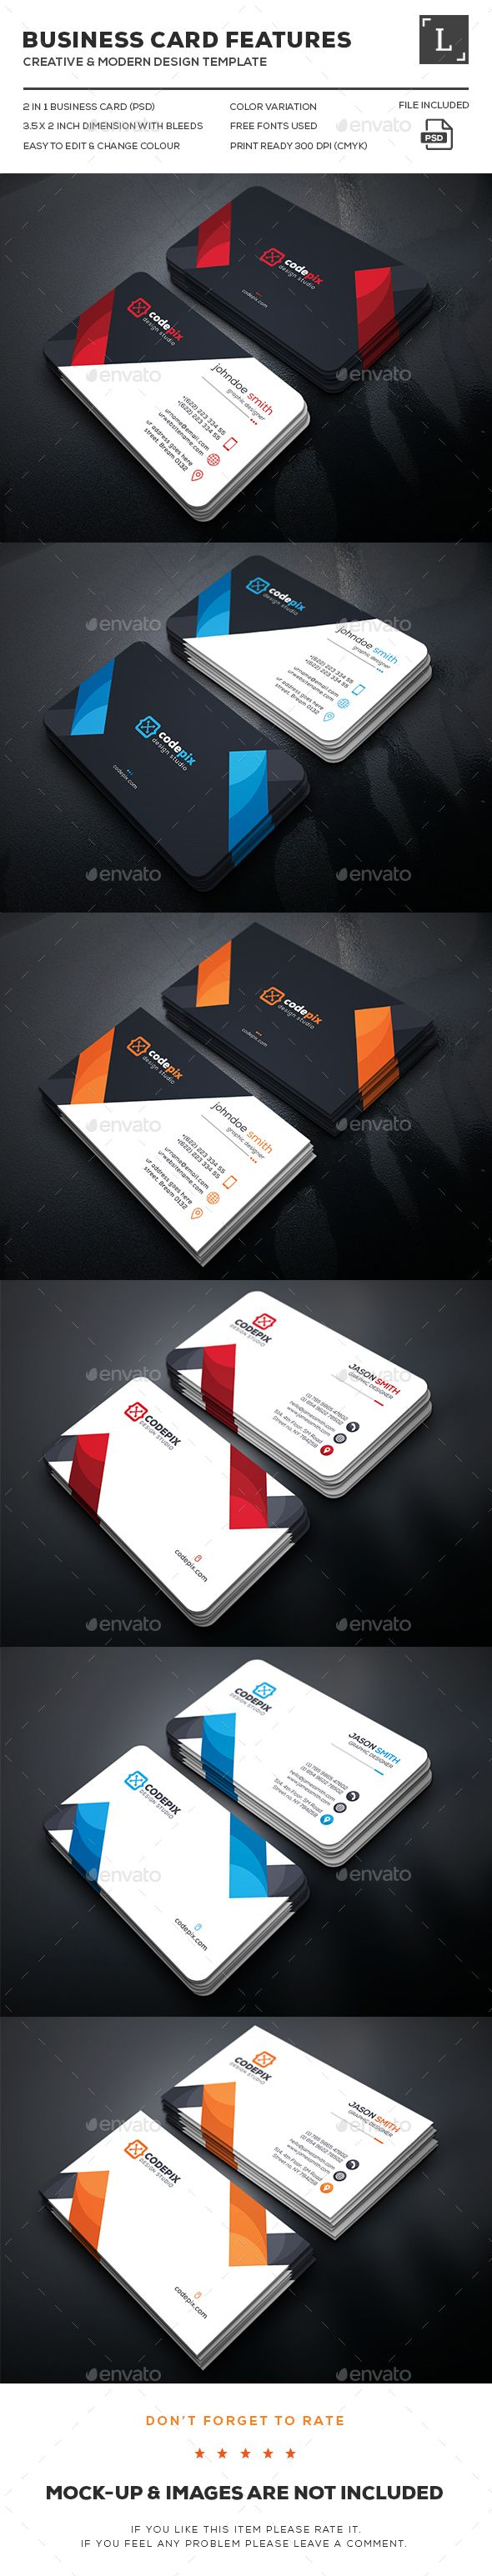 Business Card Bundle Templates PSD. Download here: http://graphicriver.net/item/business-card-bundle/16278061?ref=ksioks